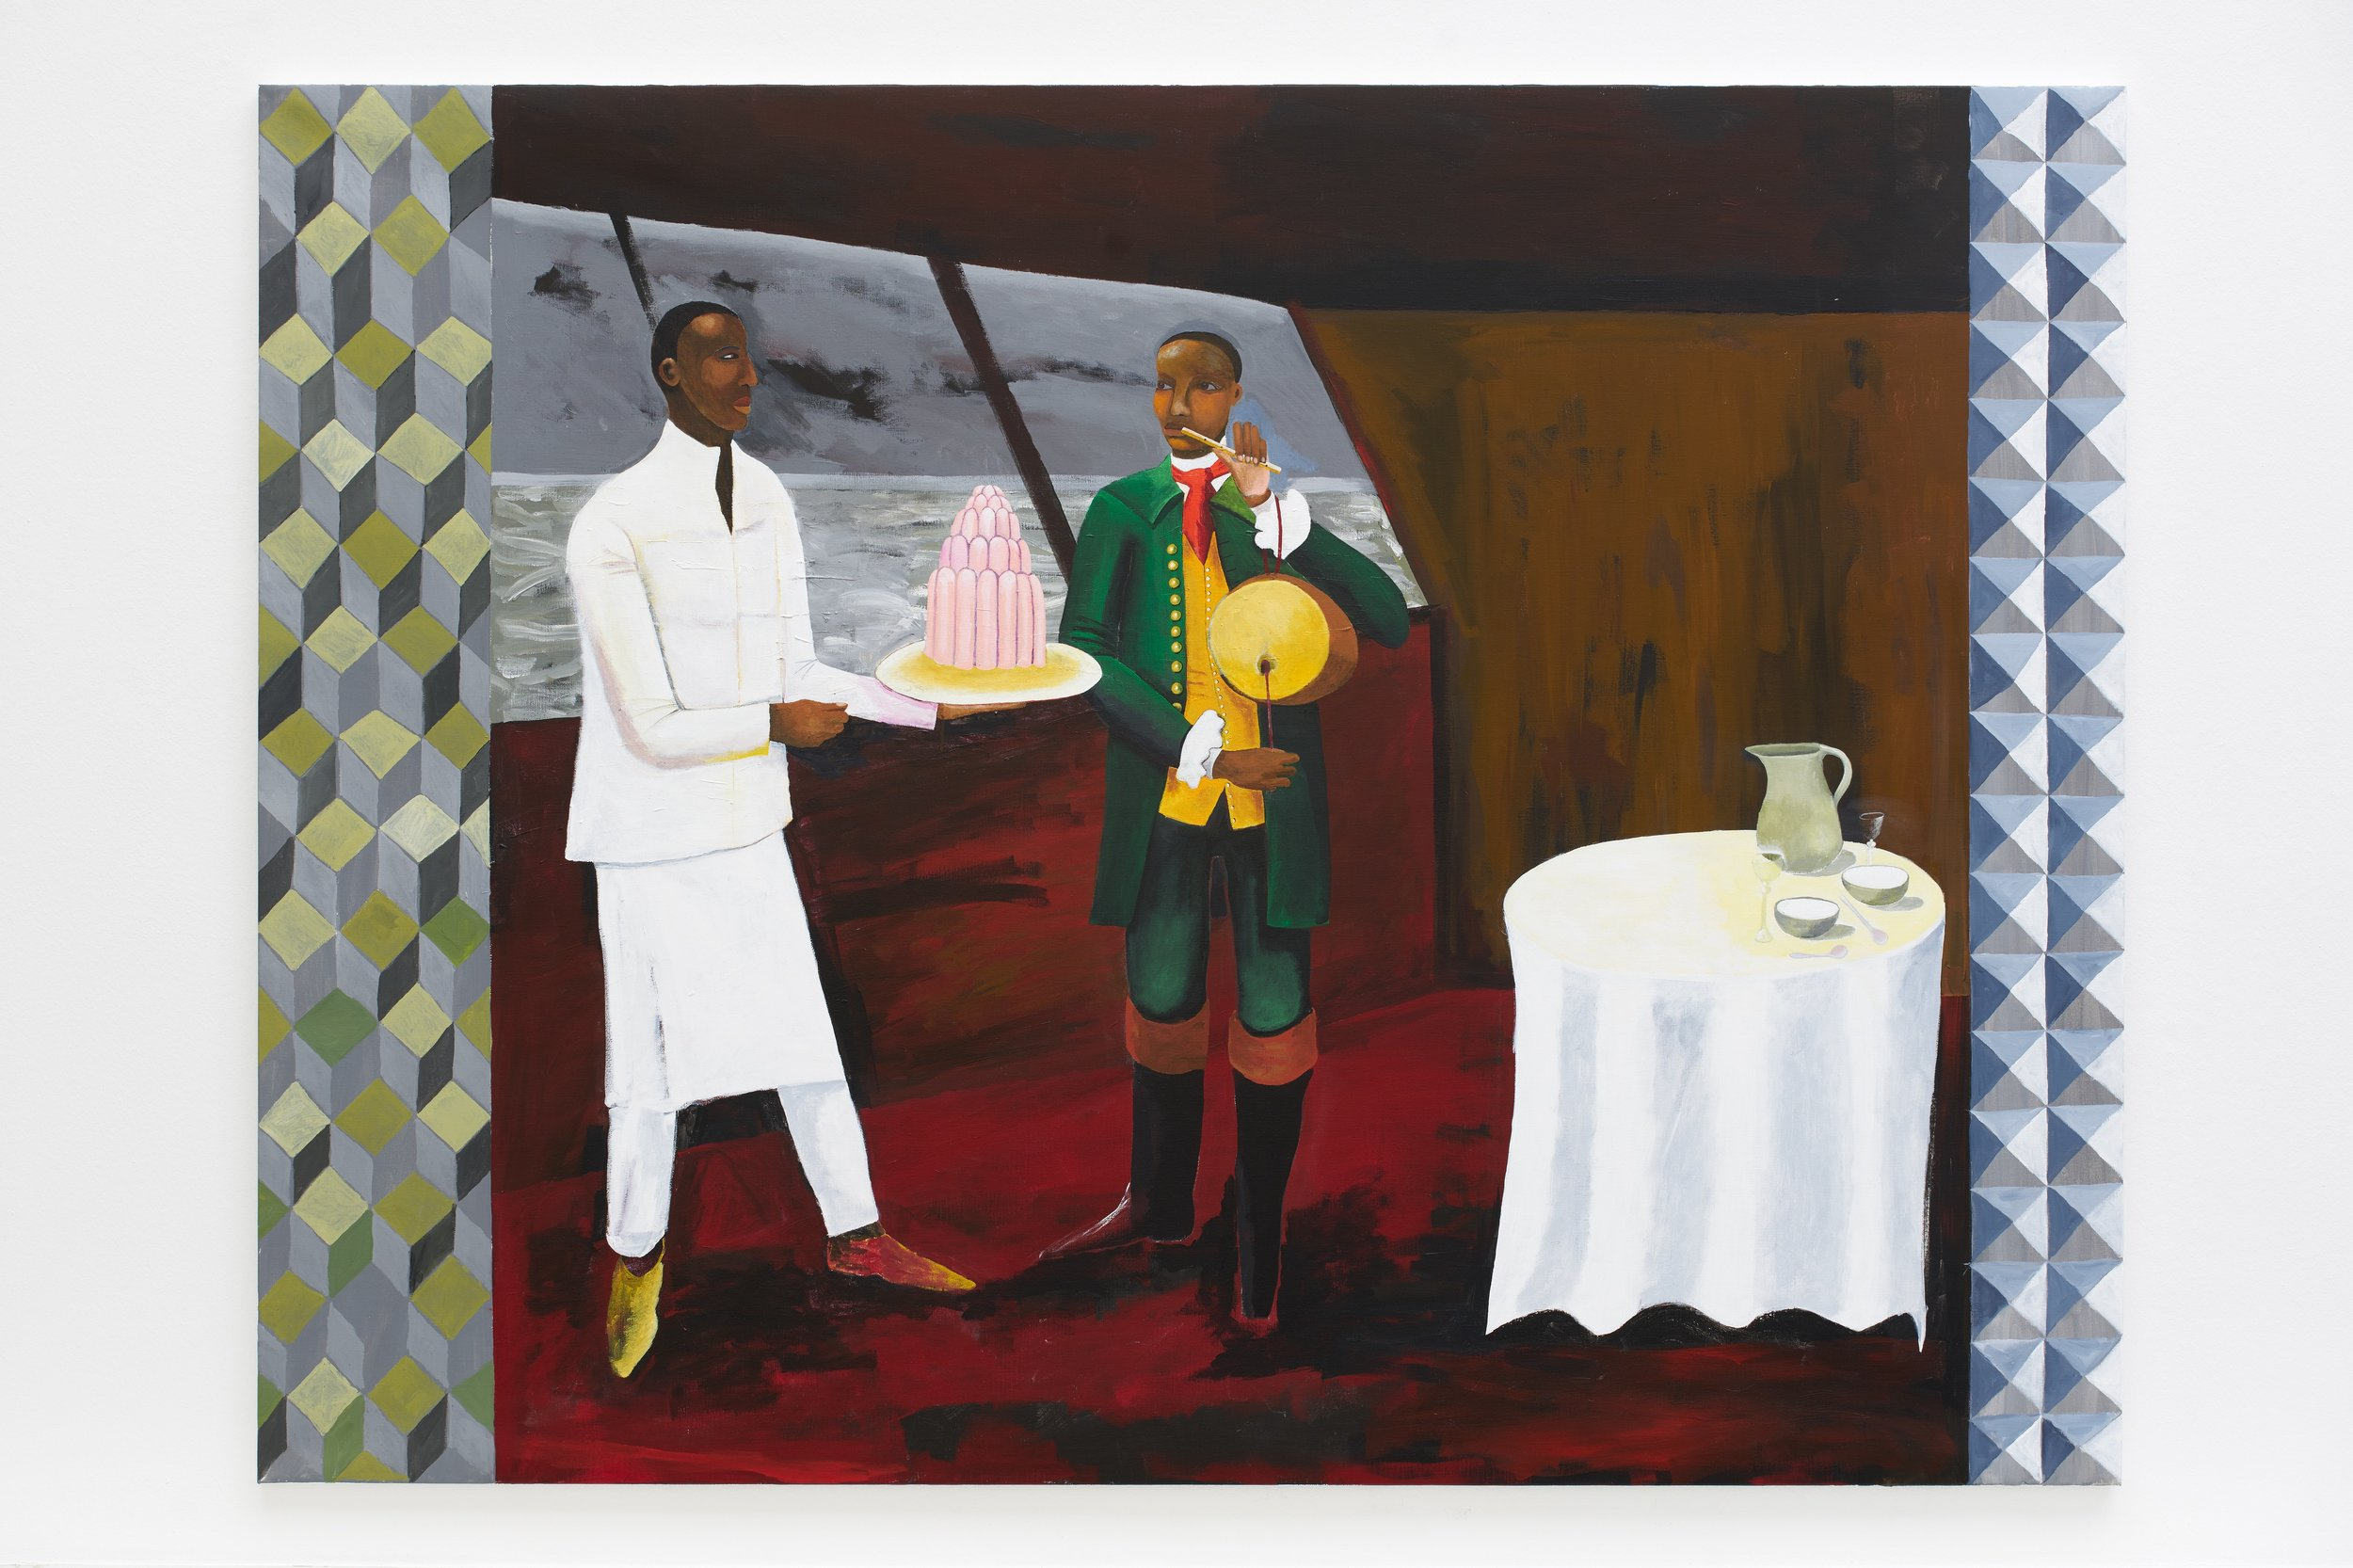 Lubaina Himid, Le Rodeur: The Cabin, 2017. Acrylic on canvas, 72 x 96 1/8 in (183 x 244 cm). Courtesy the artist and Hollybush Gardens. Photo: Stephan Bauman